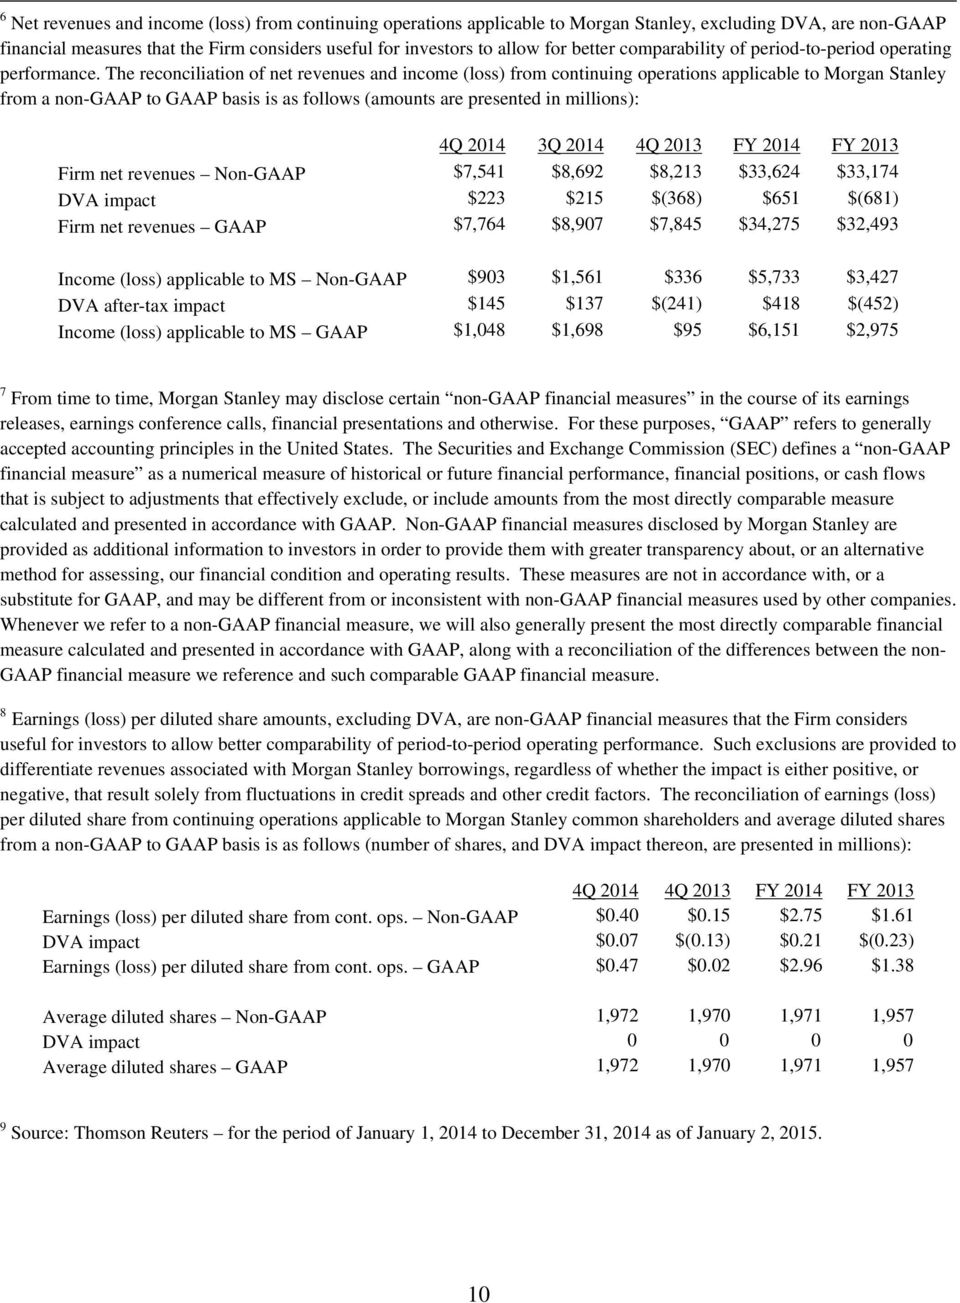 The reconciliation of net revenues and income (loss) from continuing operations applicable to Morgan Stanley from a non-gaap to GAAP basis is as follows (amounts are presented in millions): 4Q 2014